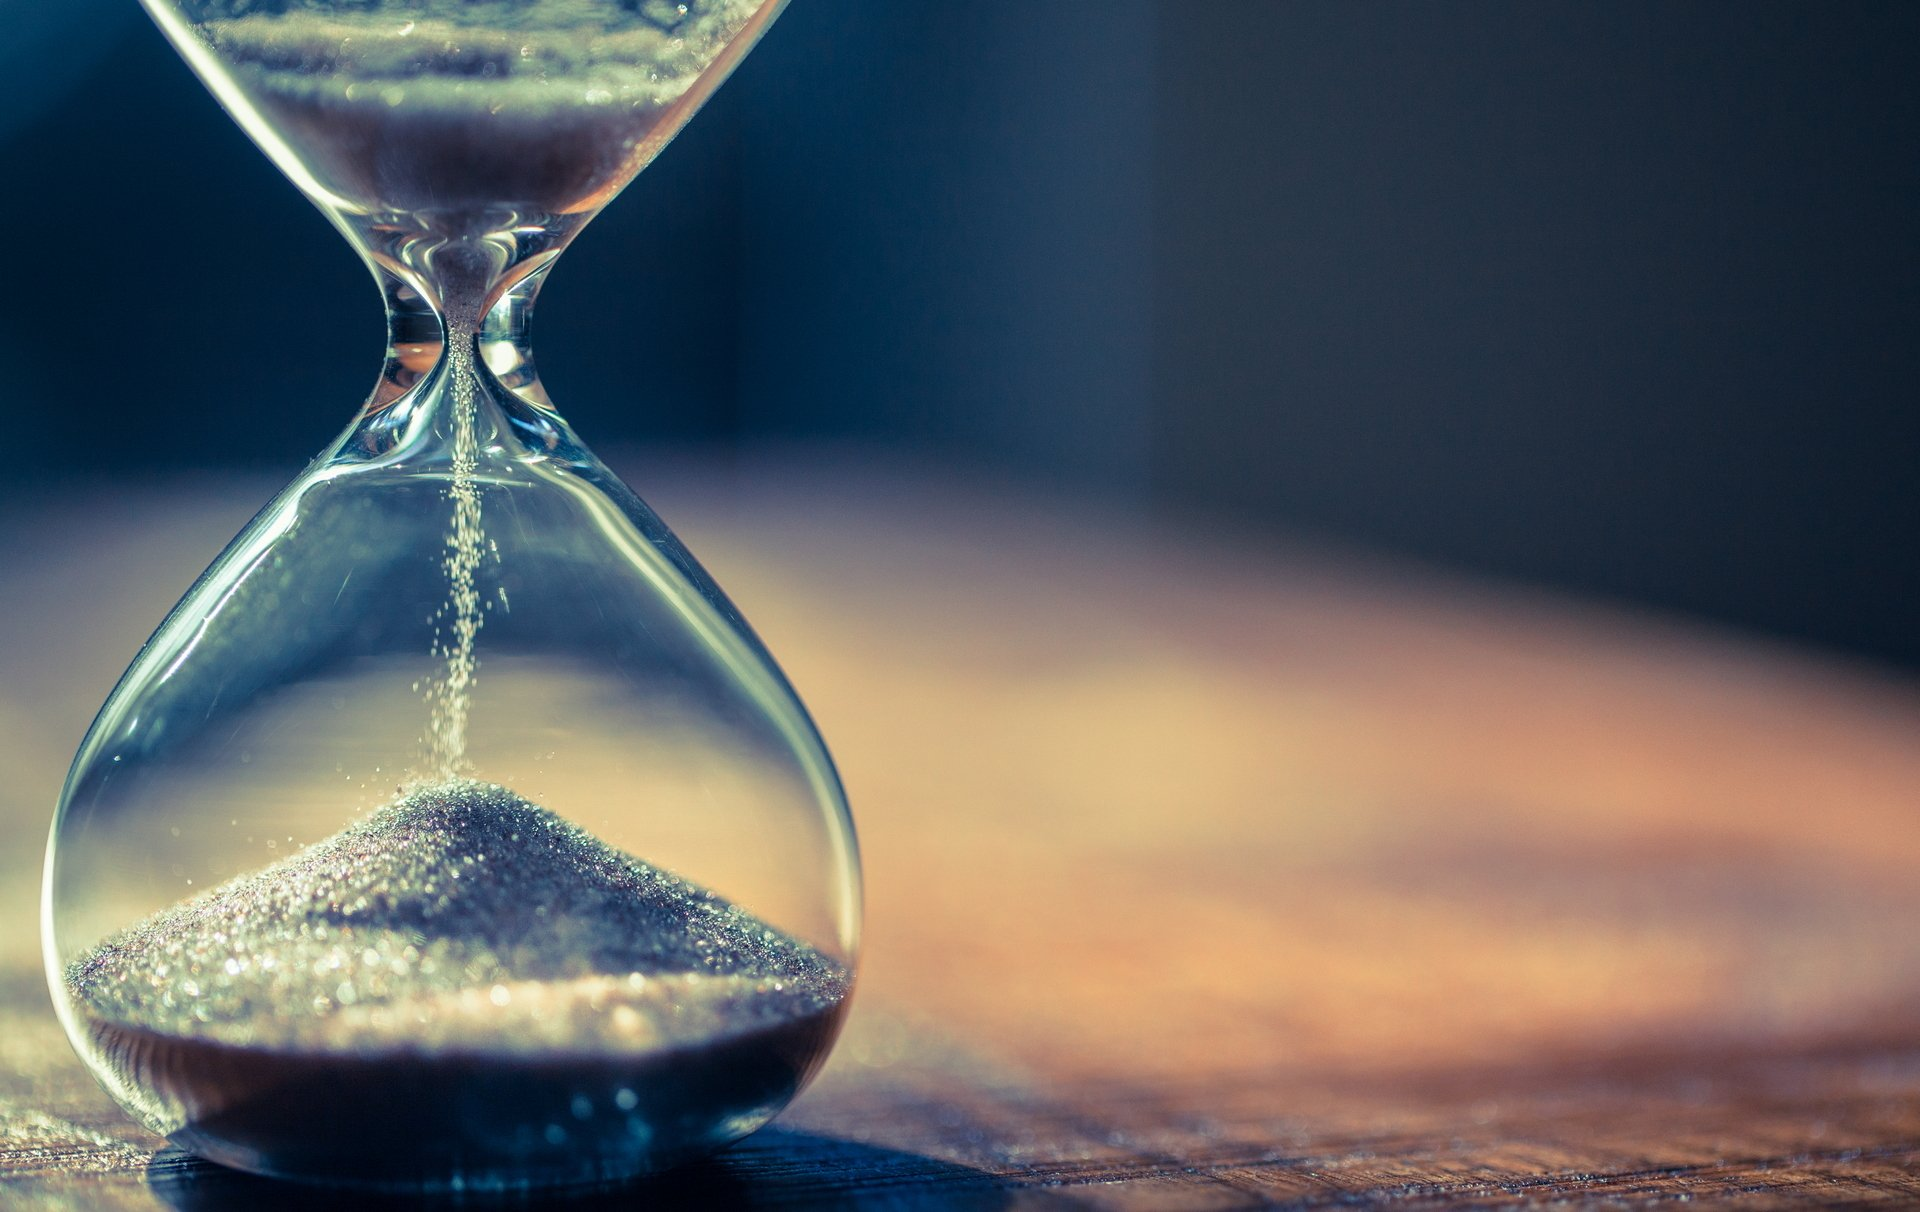 Hourglass HD Wallpaper | Background Image | 1920x1212 | ID:1093581 -  Wallpaper Abyss